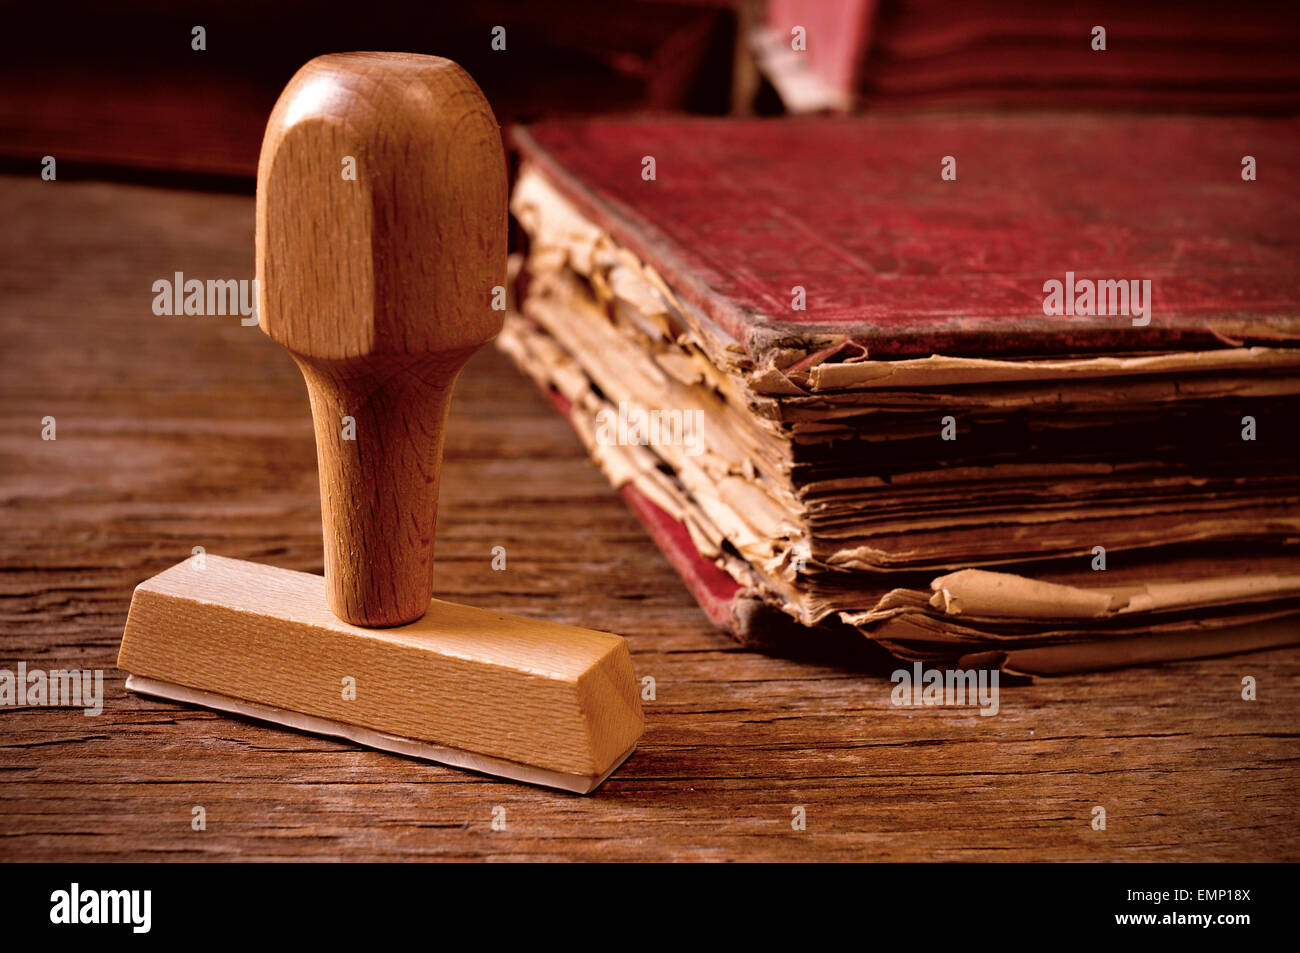 closeup of a rubber stamp and a worn-out old book, on a rustic wooden table - Stock Image